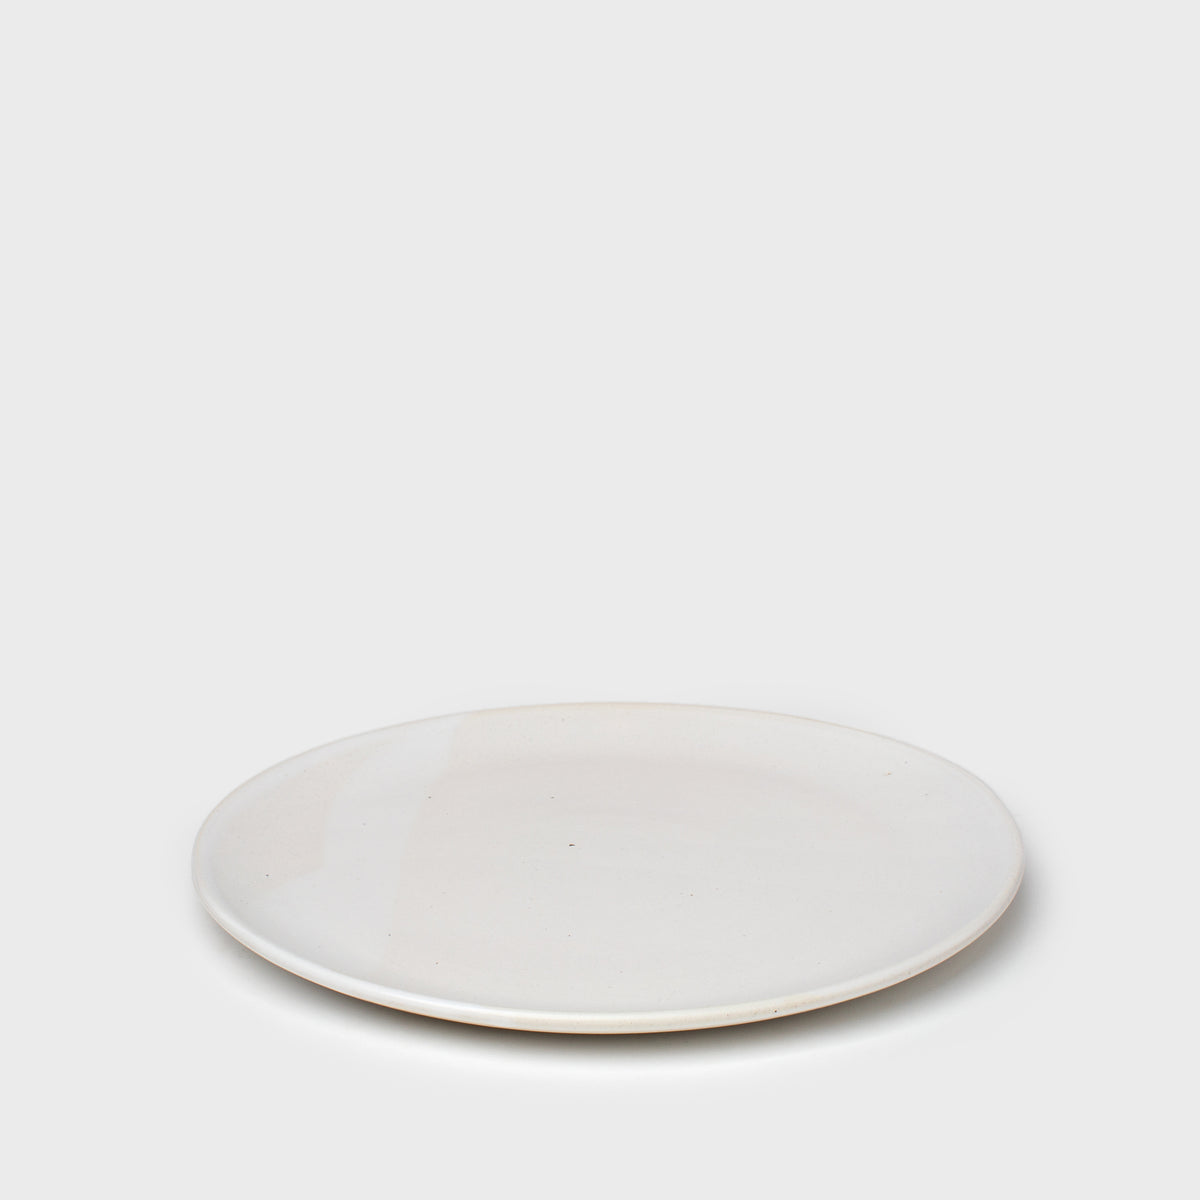 Load image into Gallery viewer, Dinner Plate in White by Meghan Flynn - Kitchen & Dining – Shoppe Amber Interiors